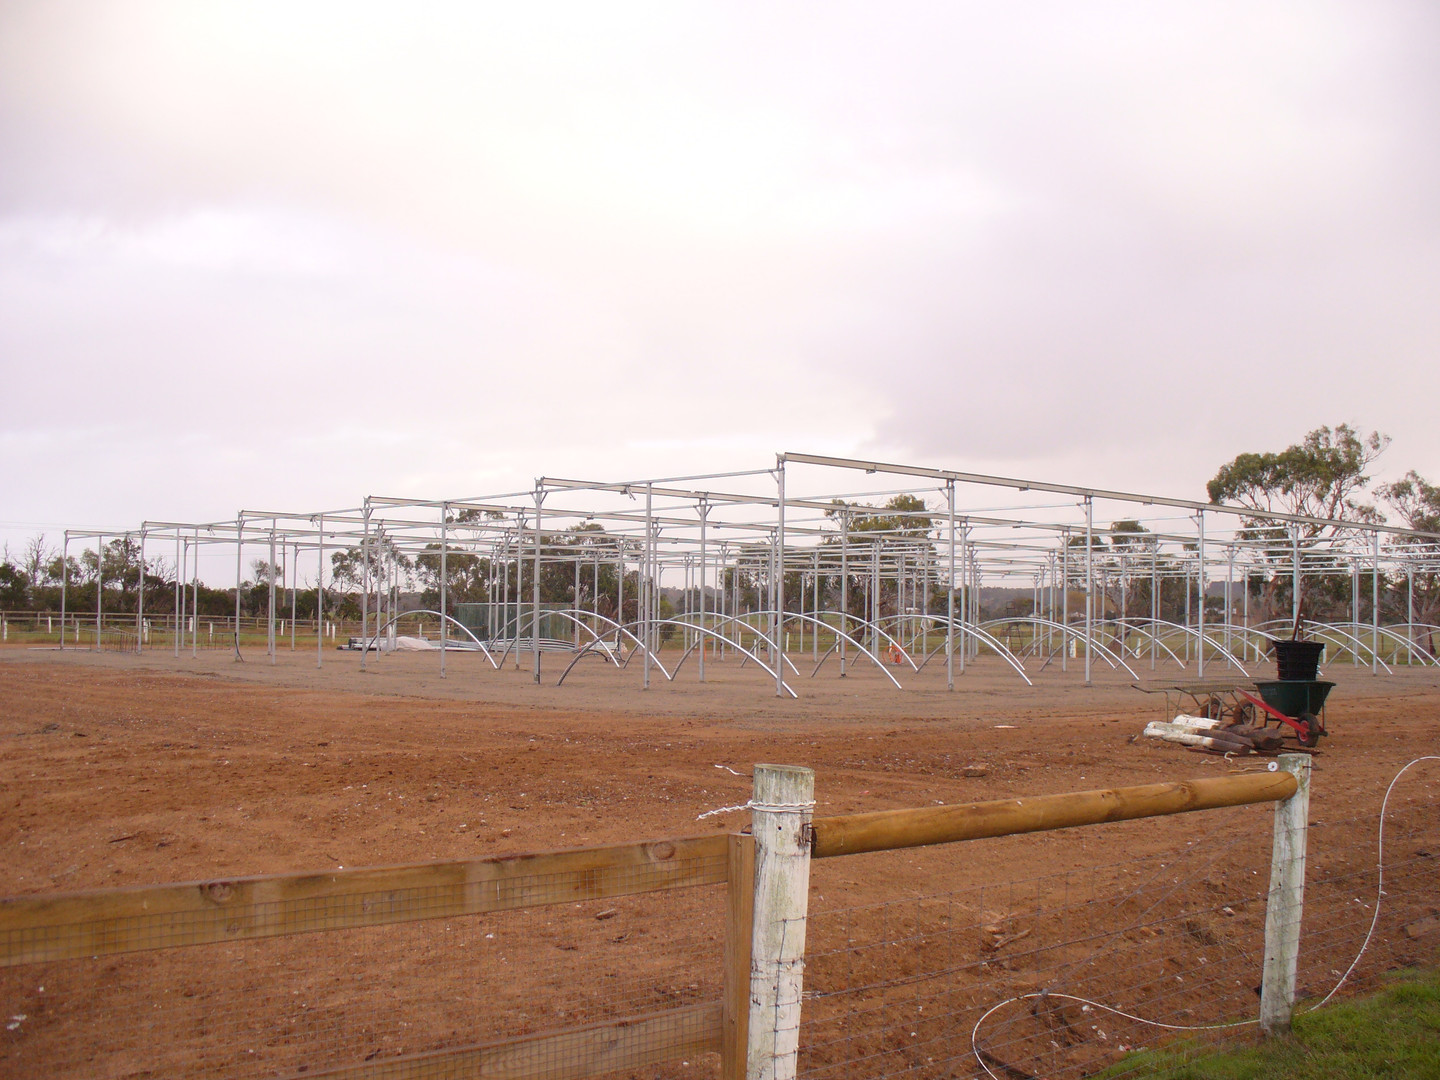 Frame goes up on carnivorous plant growing nursery.